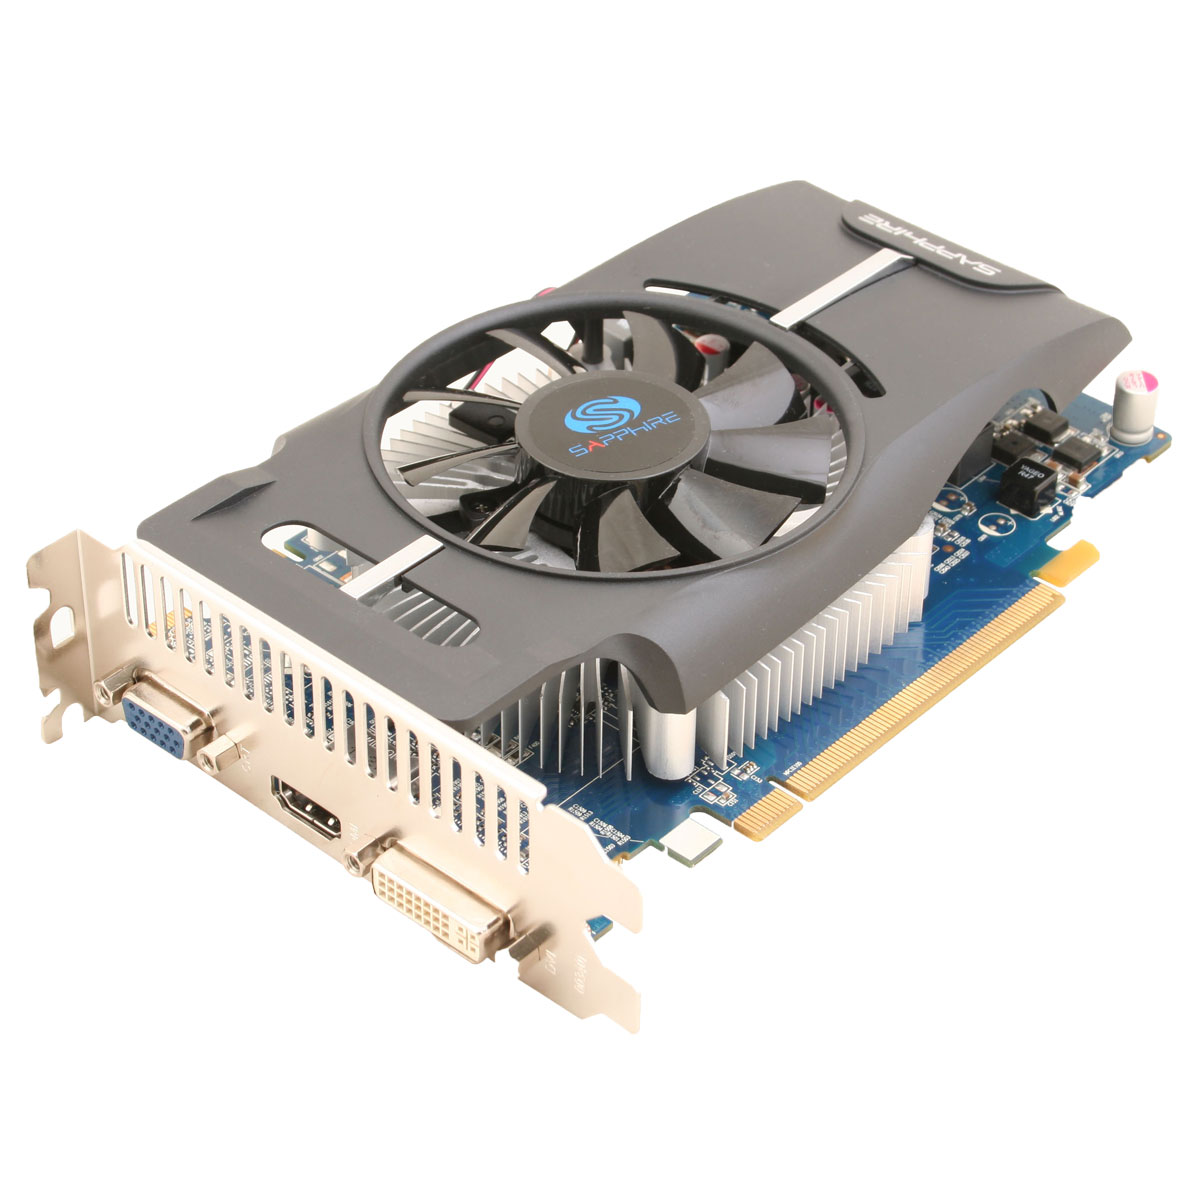 Carte graphique Sapphire Radeon HD 6770 1 Go 1 Go HDMI/DVI - PCI Express (AMD Radeon HD 6770)